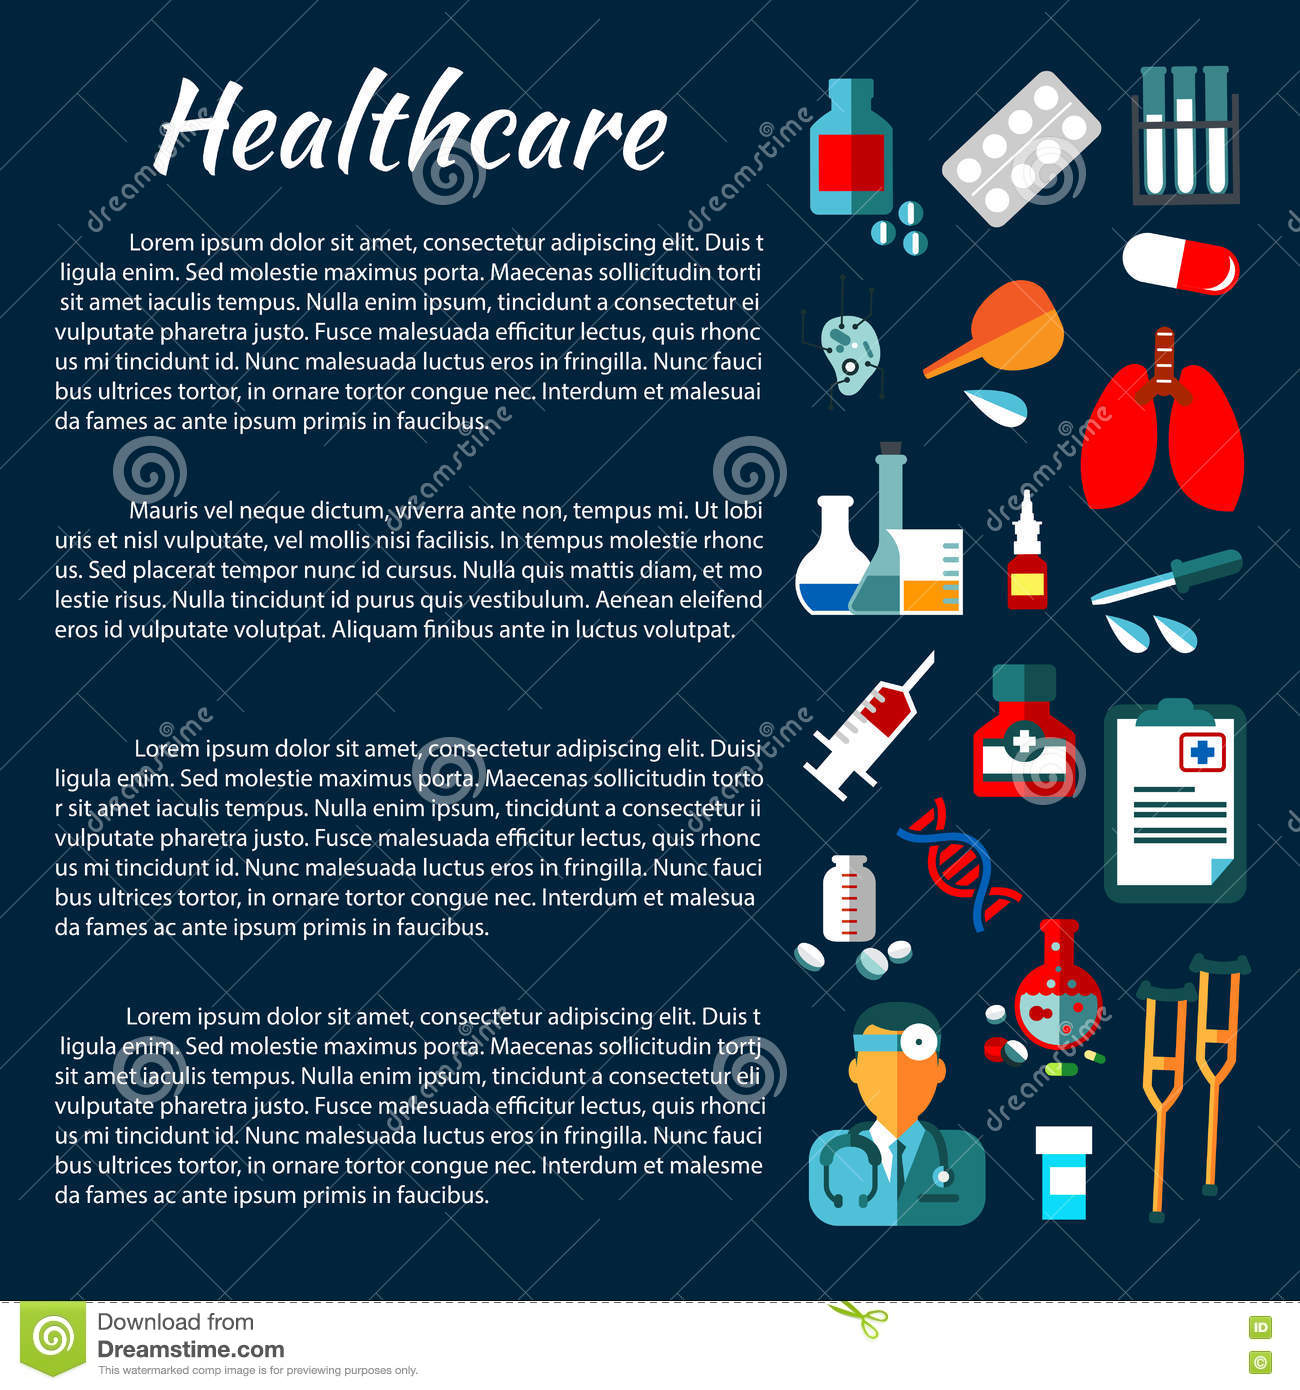 Health Care Poster With Medical Icons Stock Vector - Image: 75992725